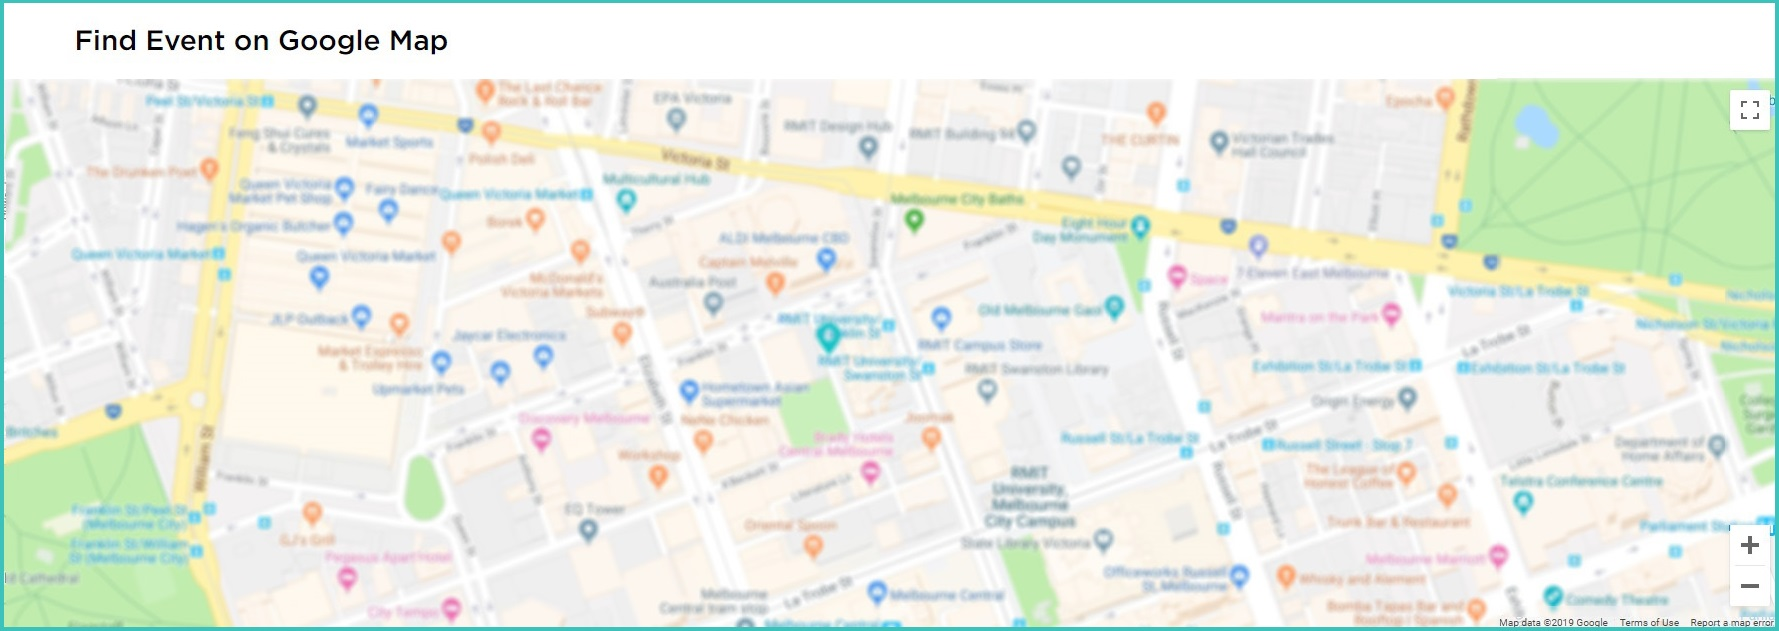 EventBookings - Find Your Event on Google Map